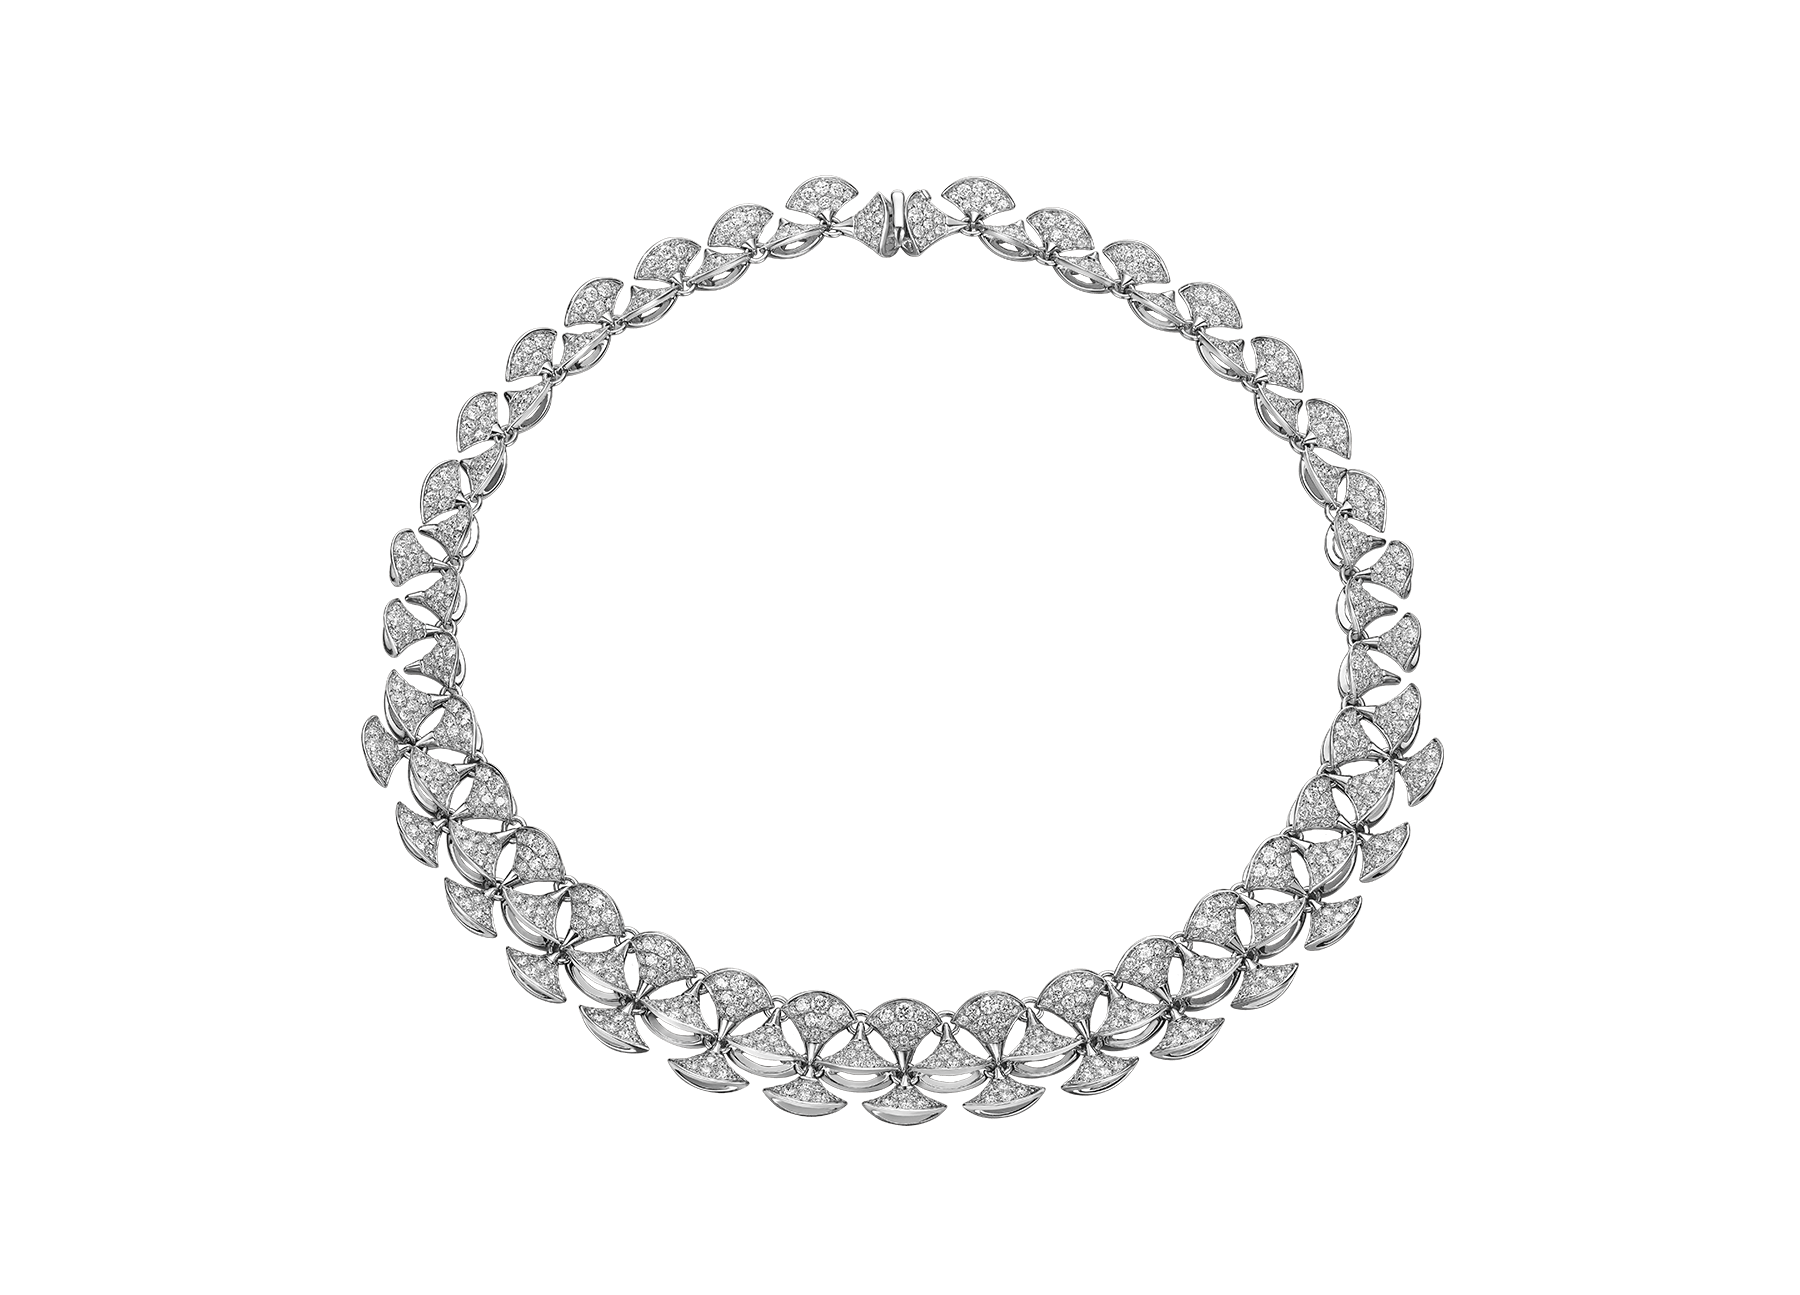 DIVAS' DREAM necklace in 18 kt white gold set with full pavé diamonds. 349444 image 1